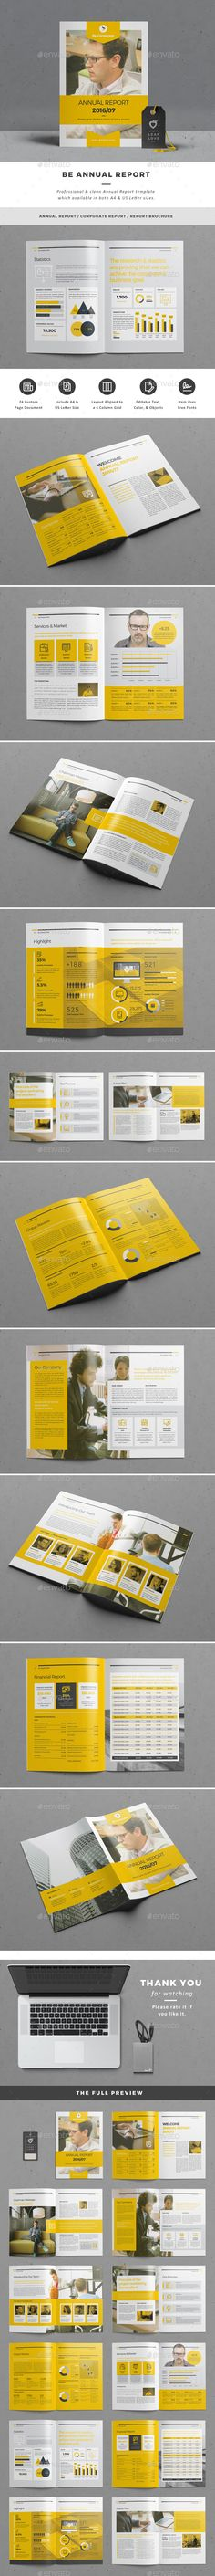 Be Annual Report Brochure Template InDesign INDD. Download here: http://graphicriver.net/item/be-annual-report/15522022?ref=ksioks